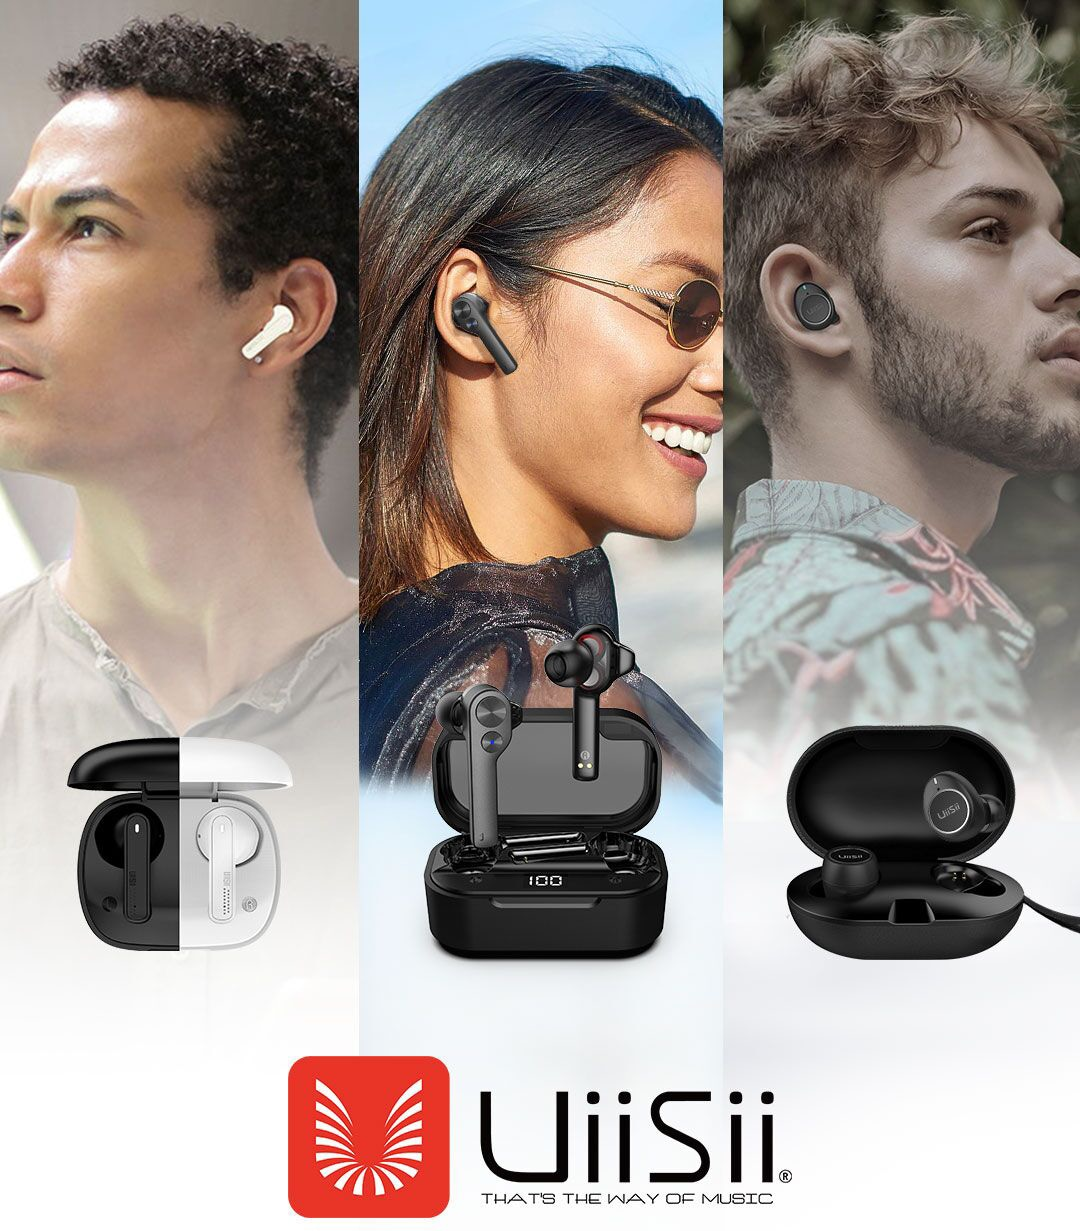 UiiSii Wireless Earbuds Giveaway